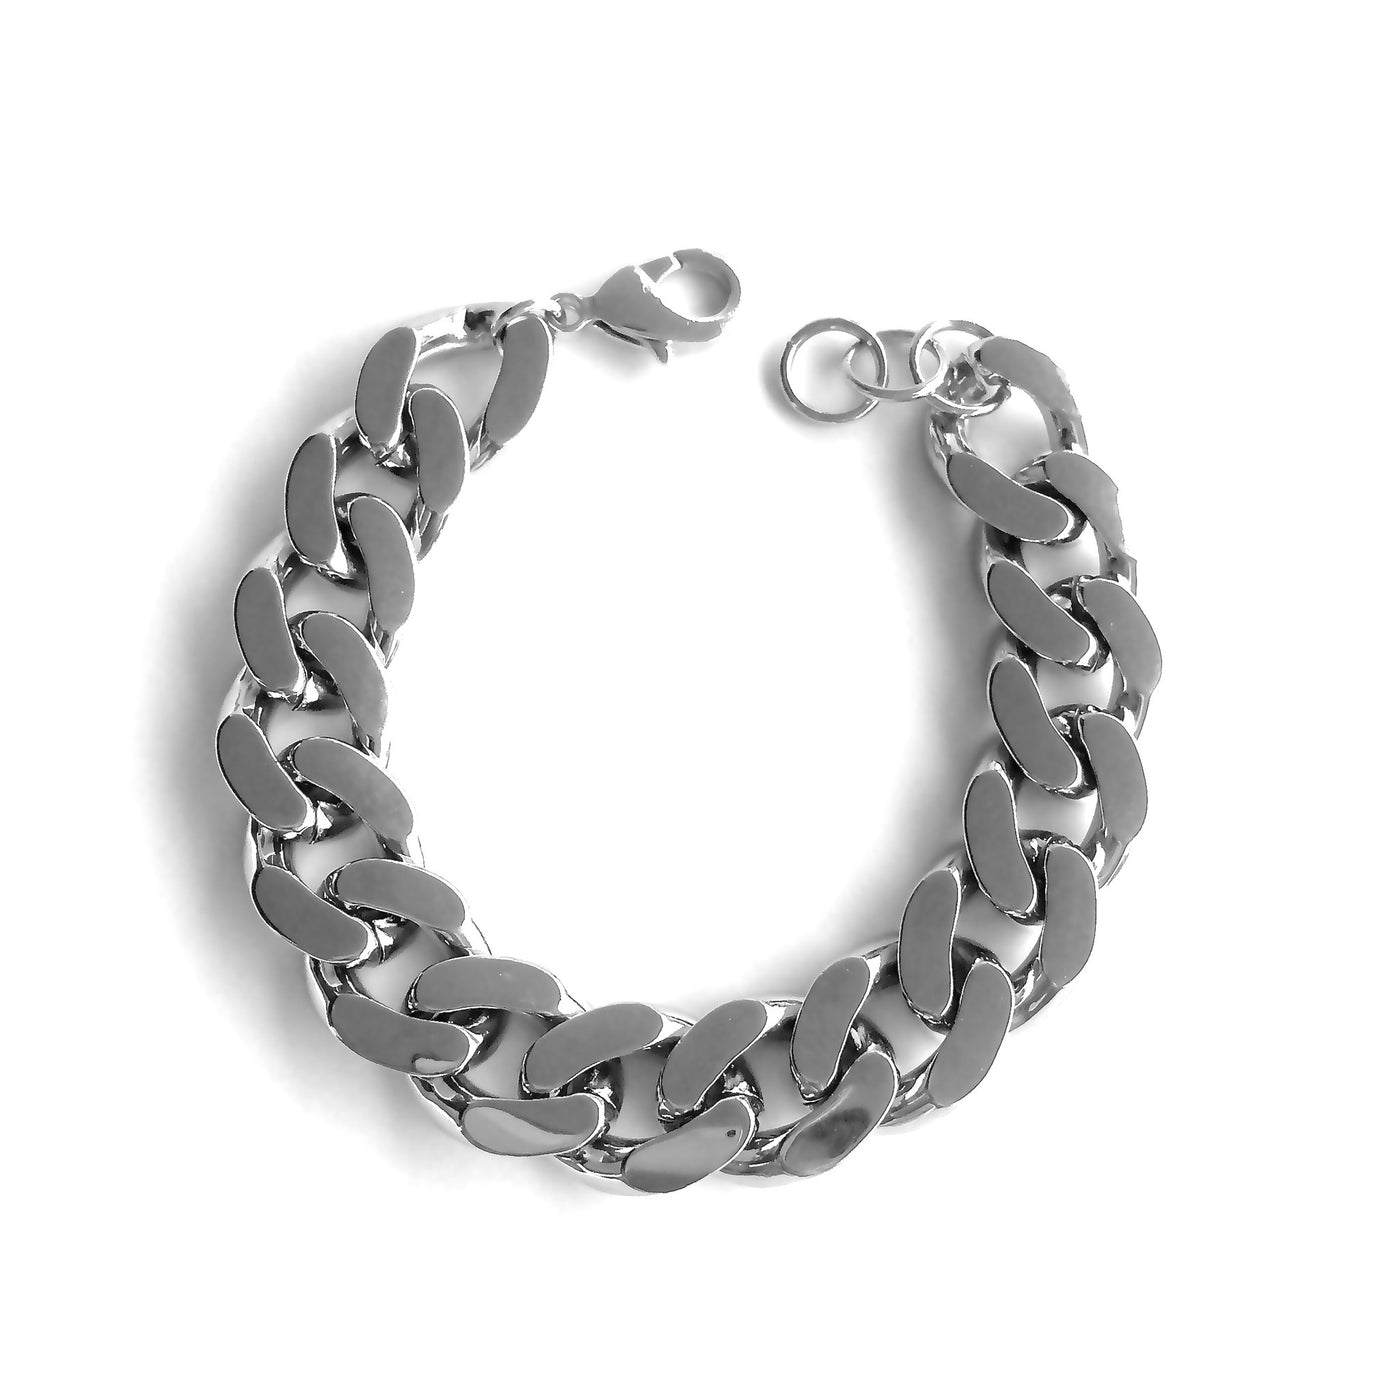 Metal Chain Bracelet - Chainless Brain